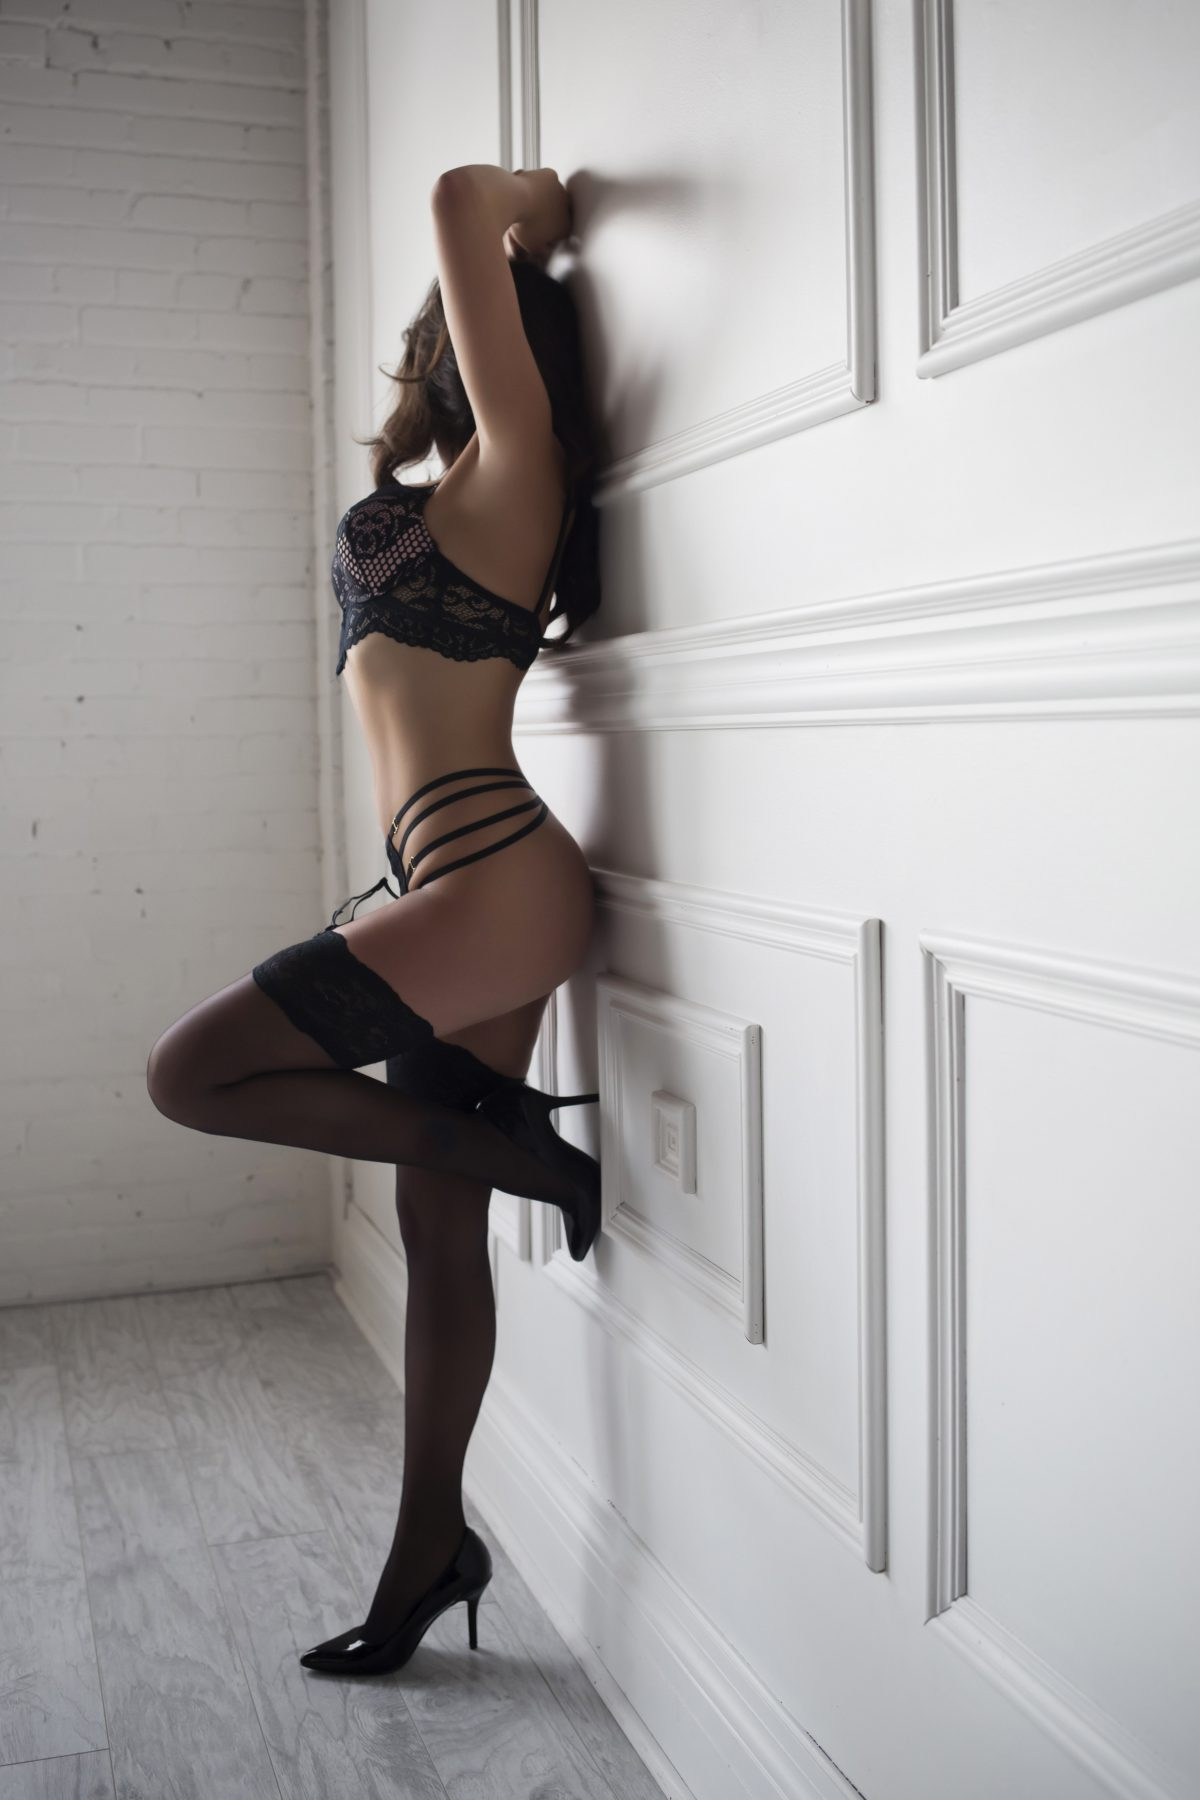 Toronto escorts companion upscale Farrah Interests Duo Couple-friendly Non-smoking Age Young Figure Slender Petite Breasts Natural Hair Brunette Ethnicity European Tattoos Small Large